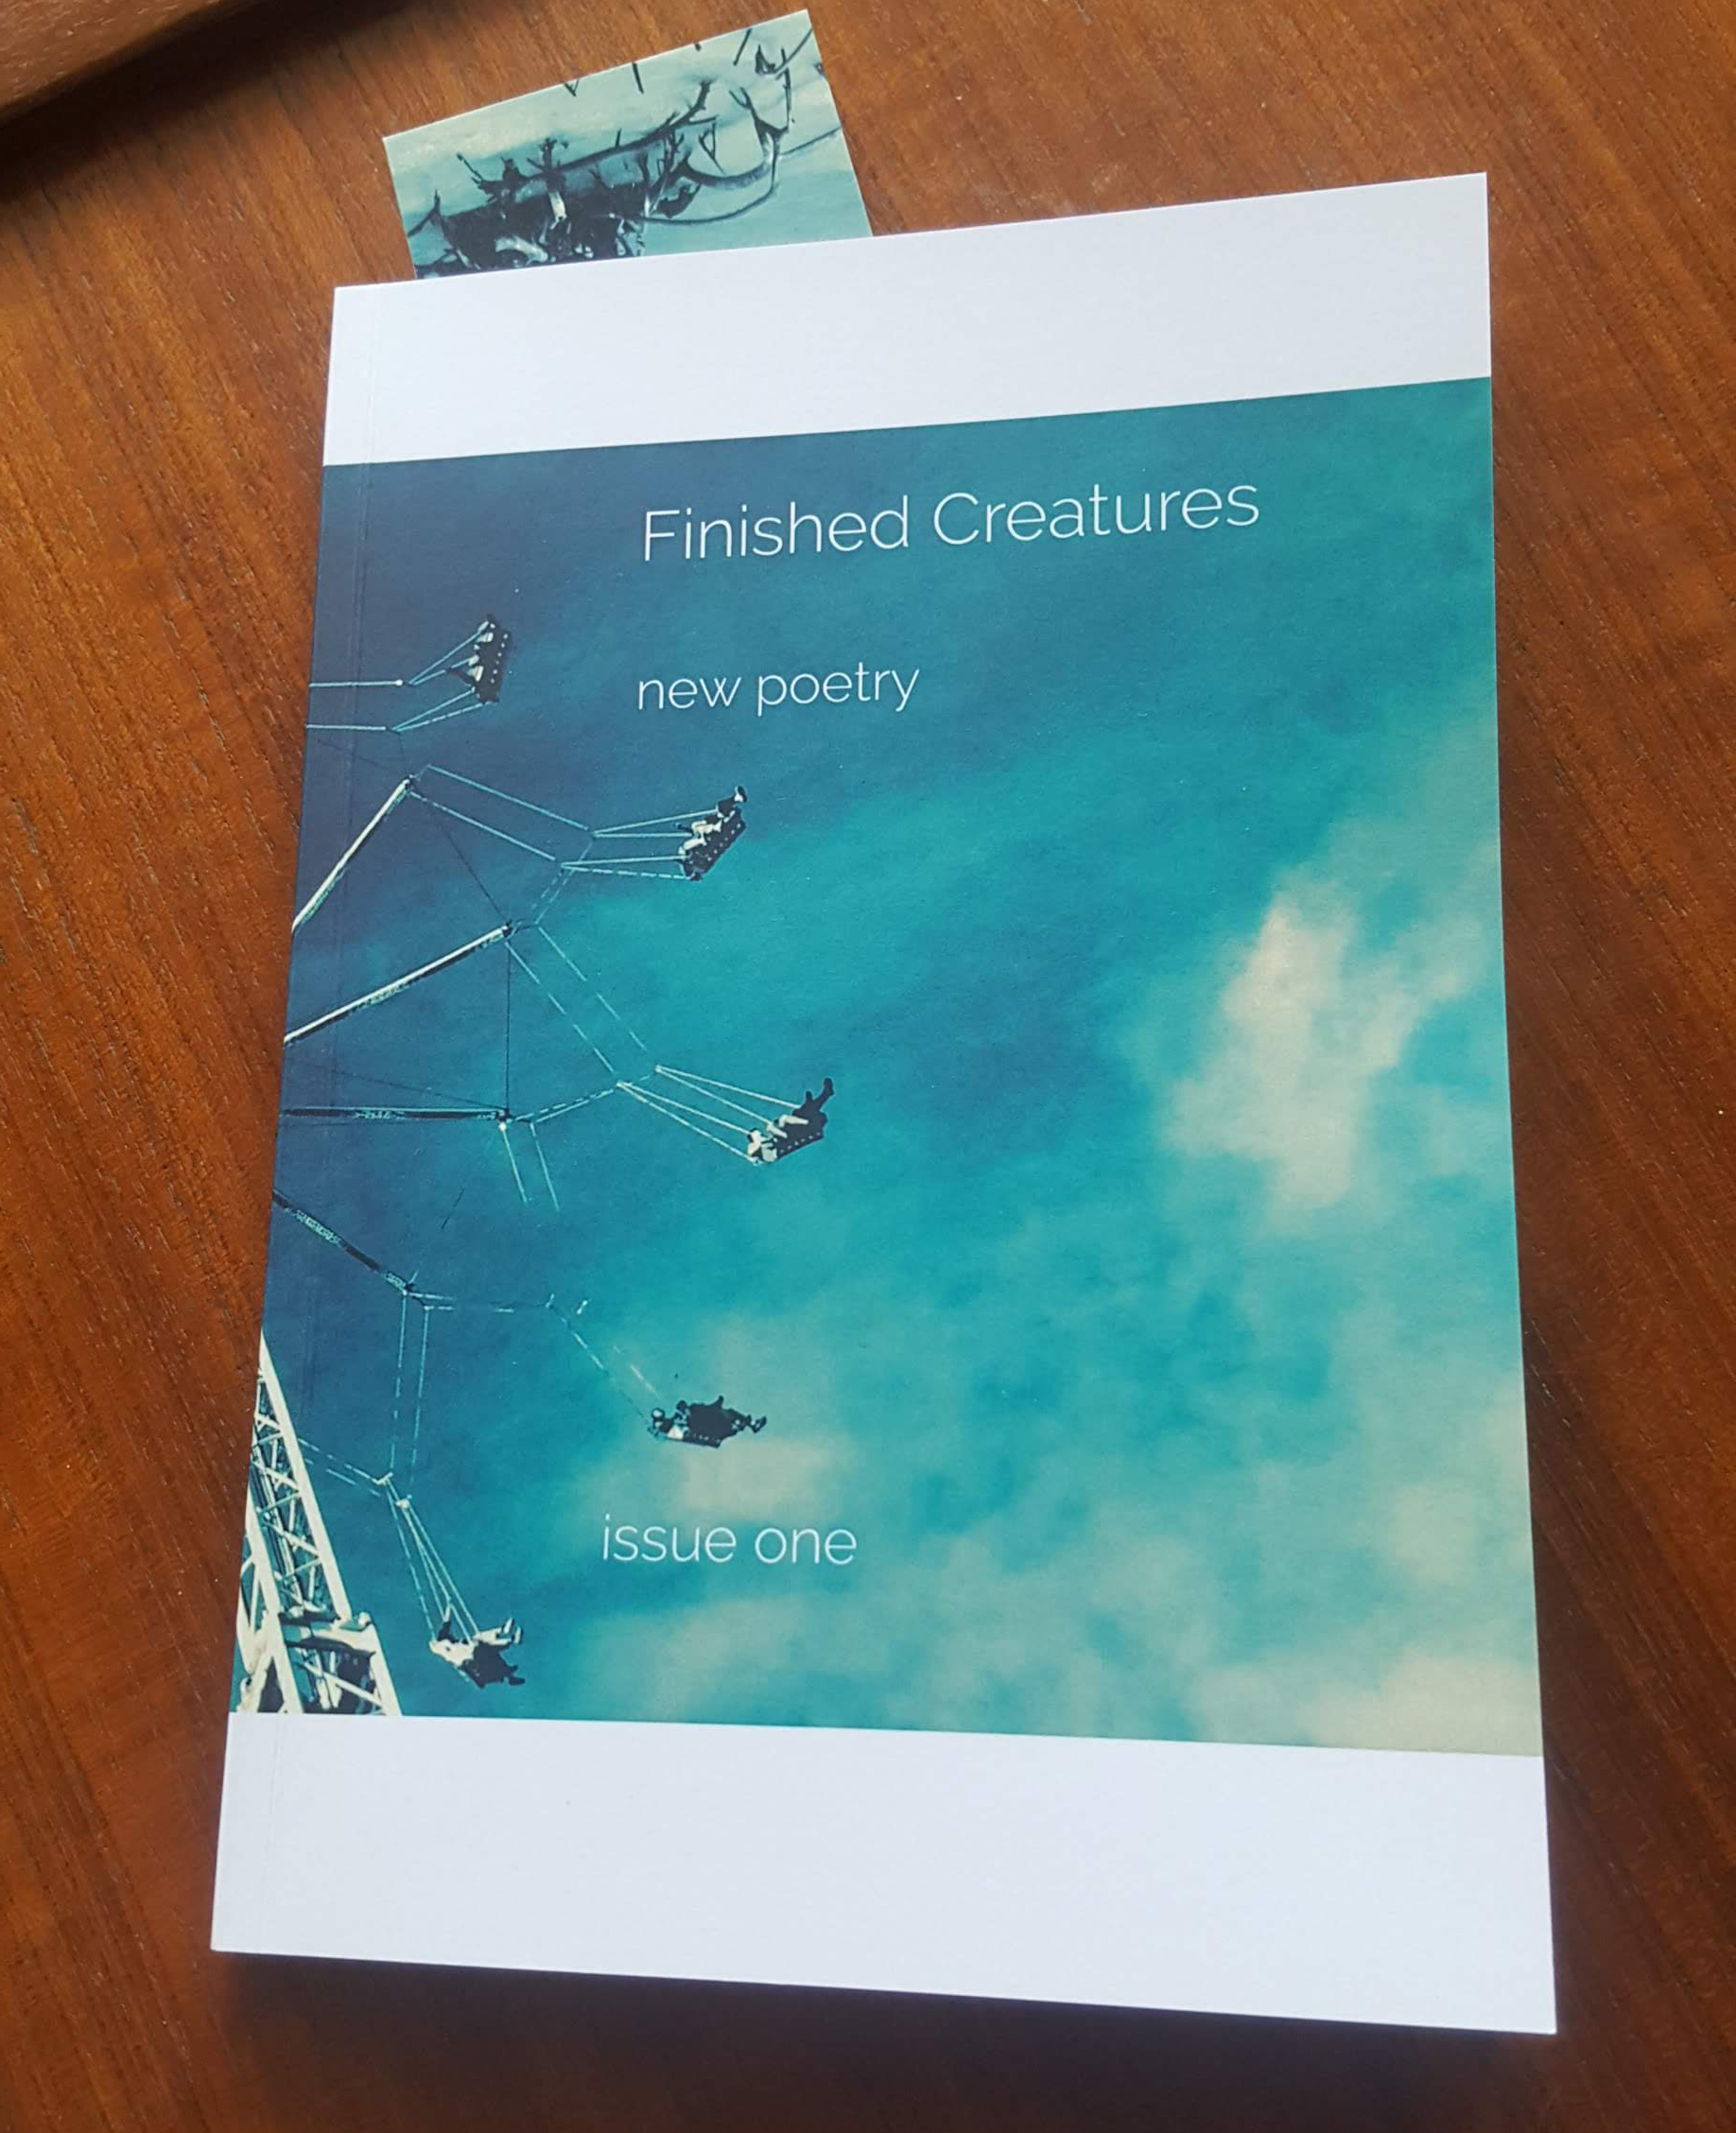 Finished Creatures